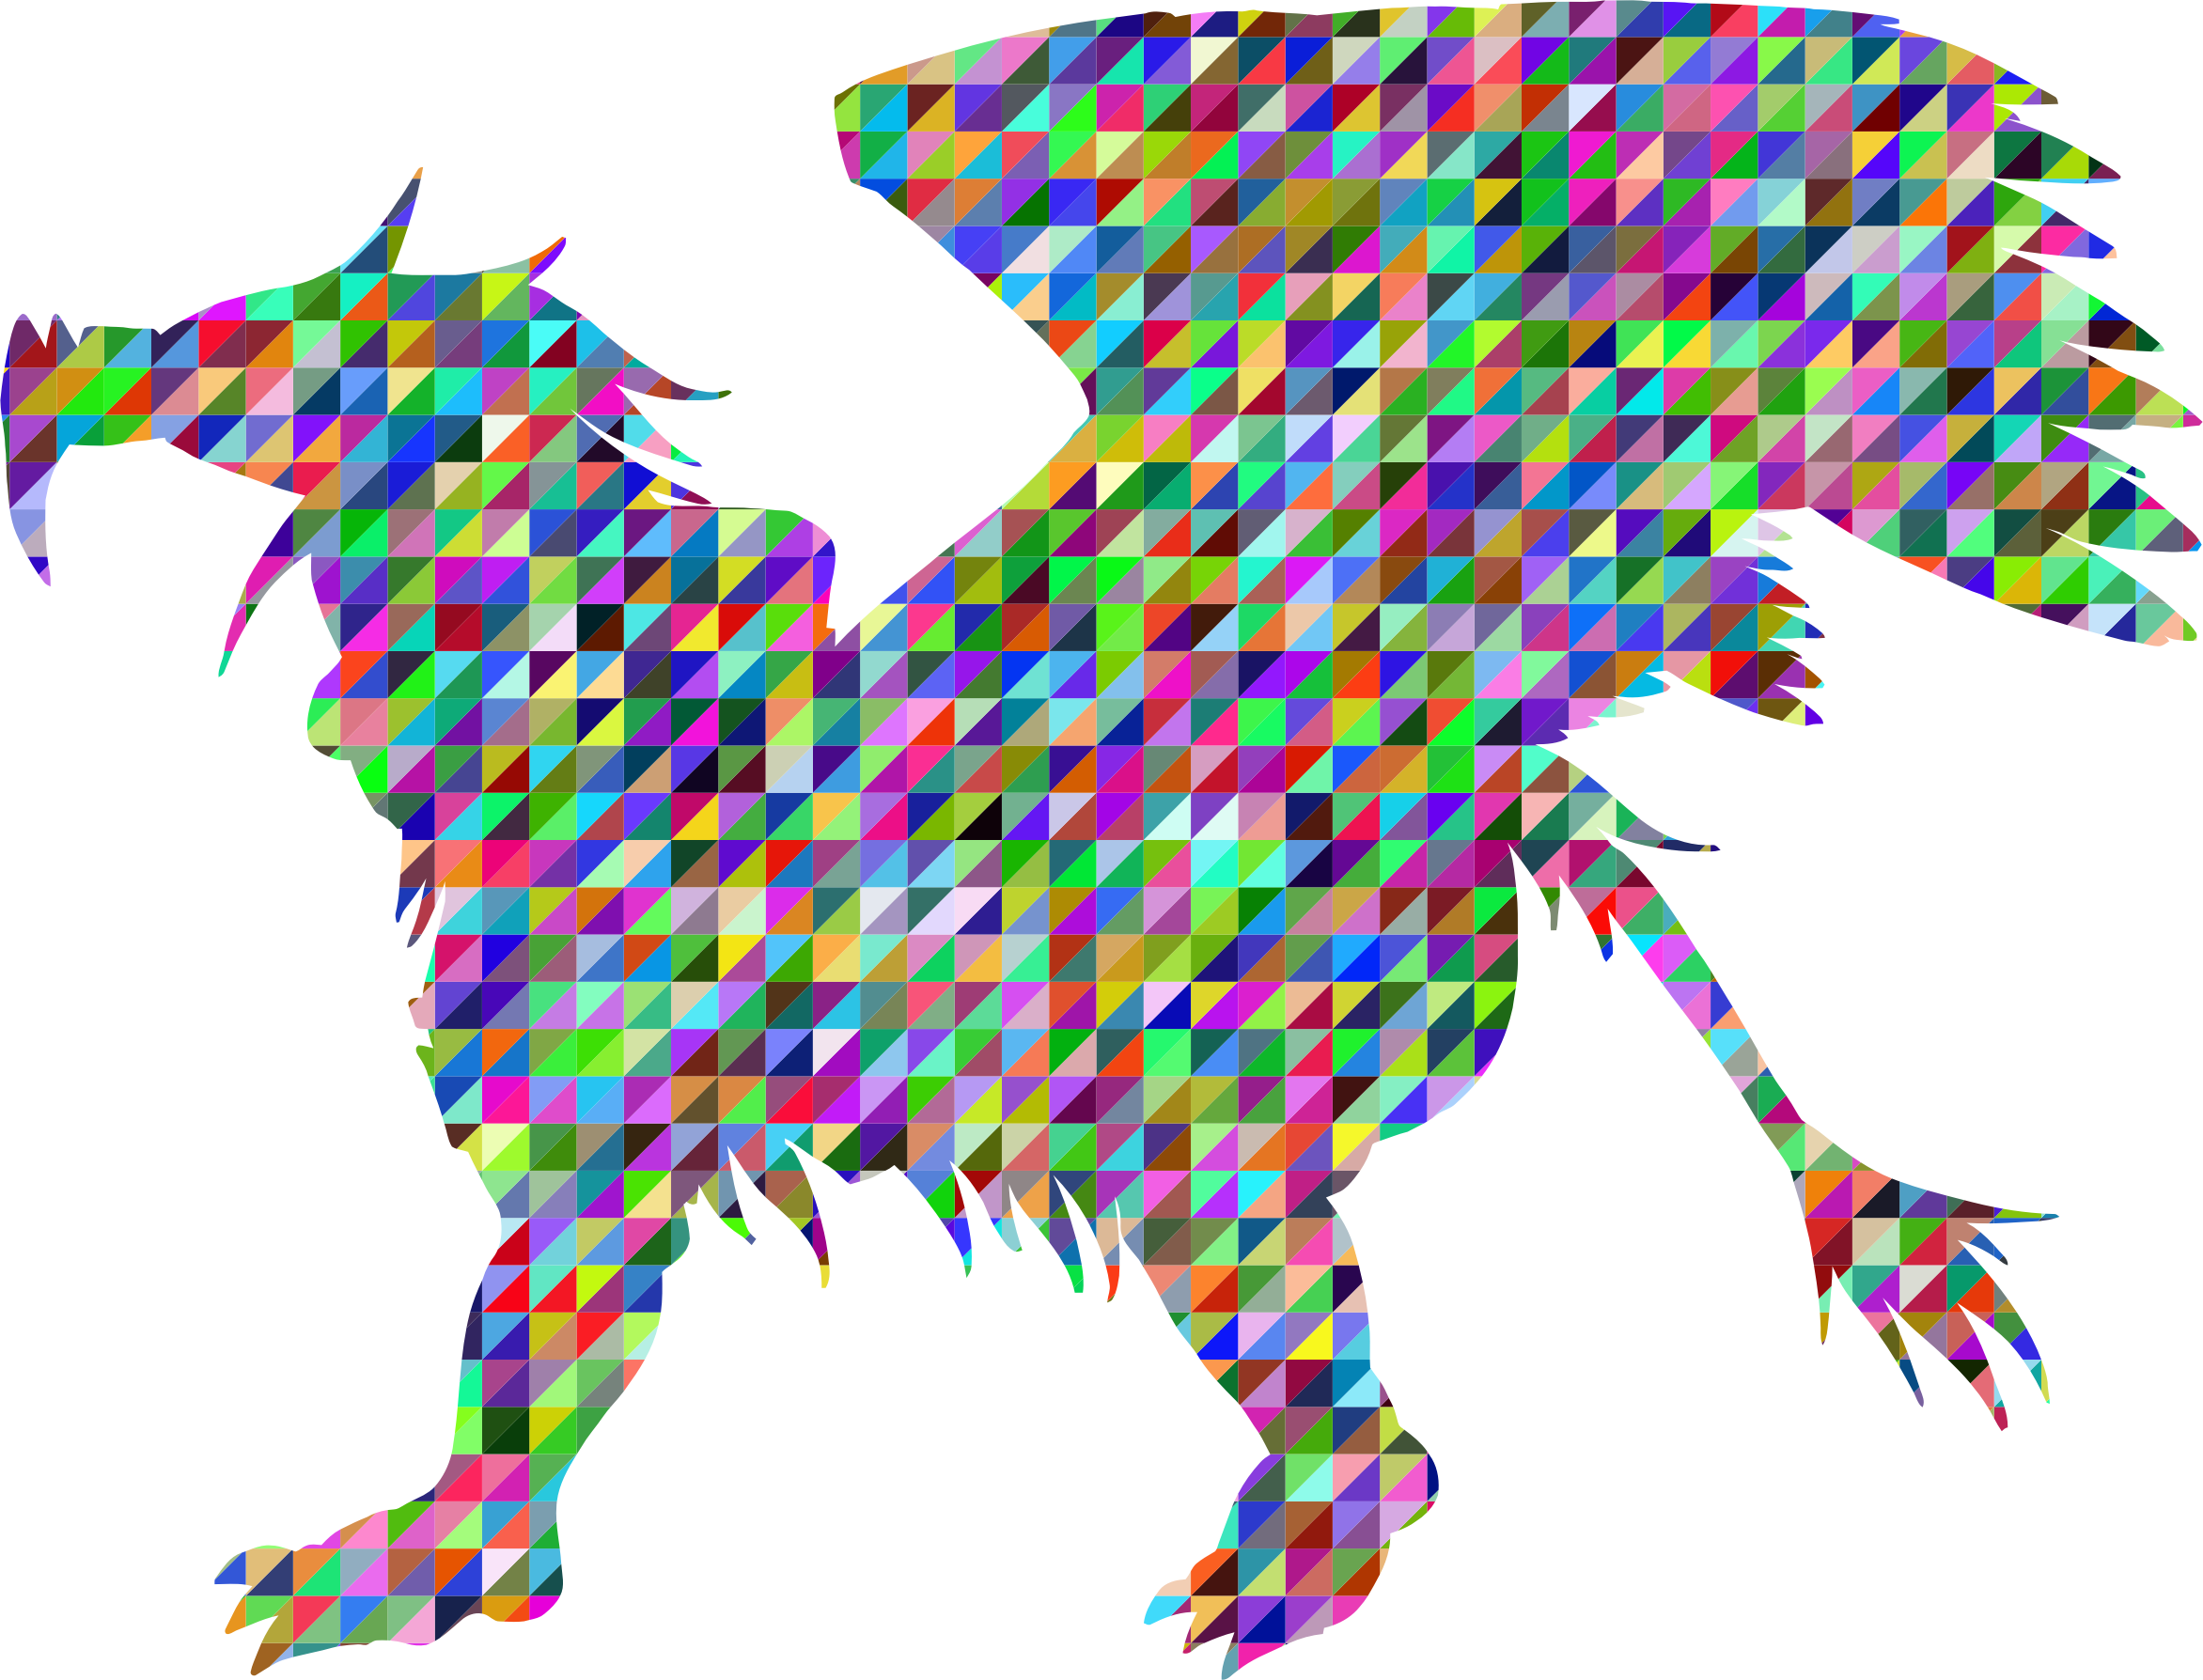 Low Poly Triangular Griffin Silhouette by GDJ